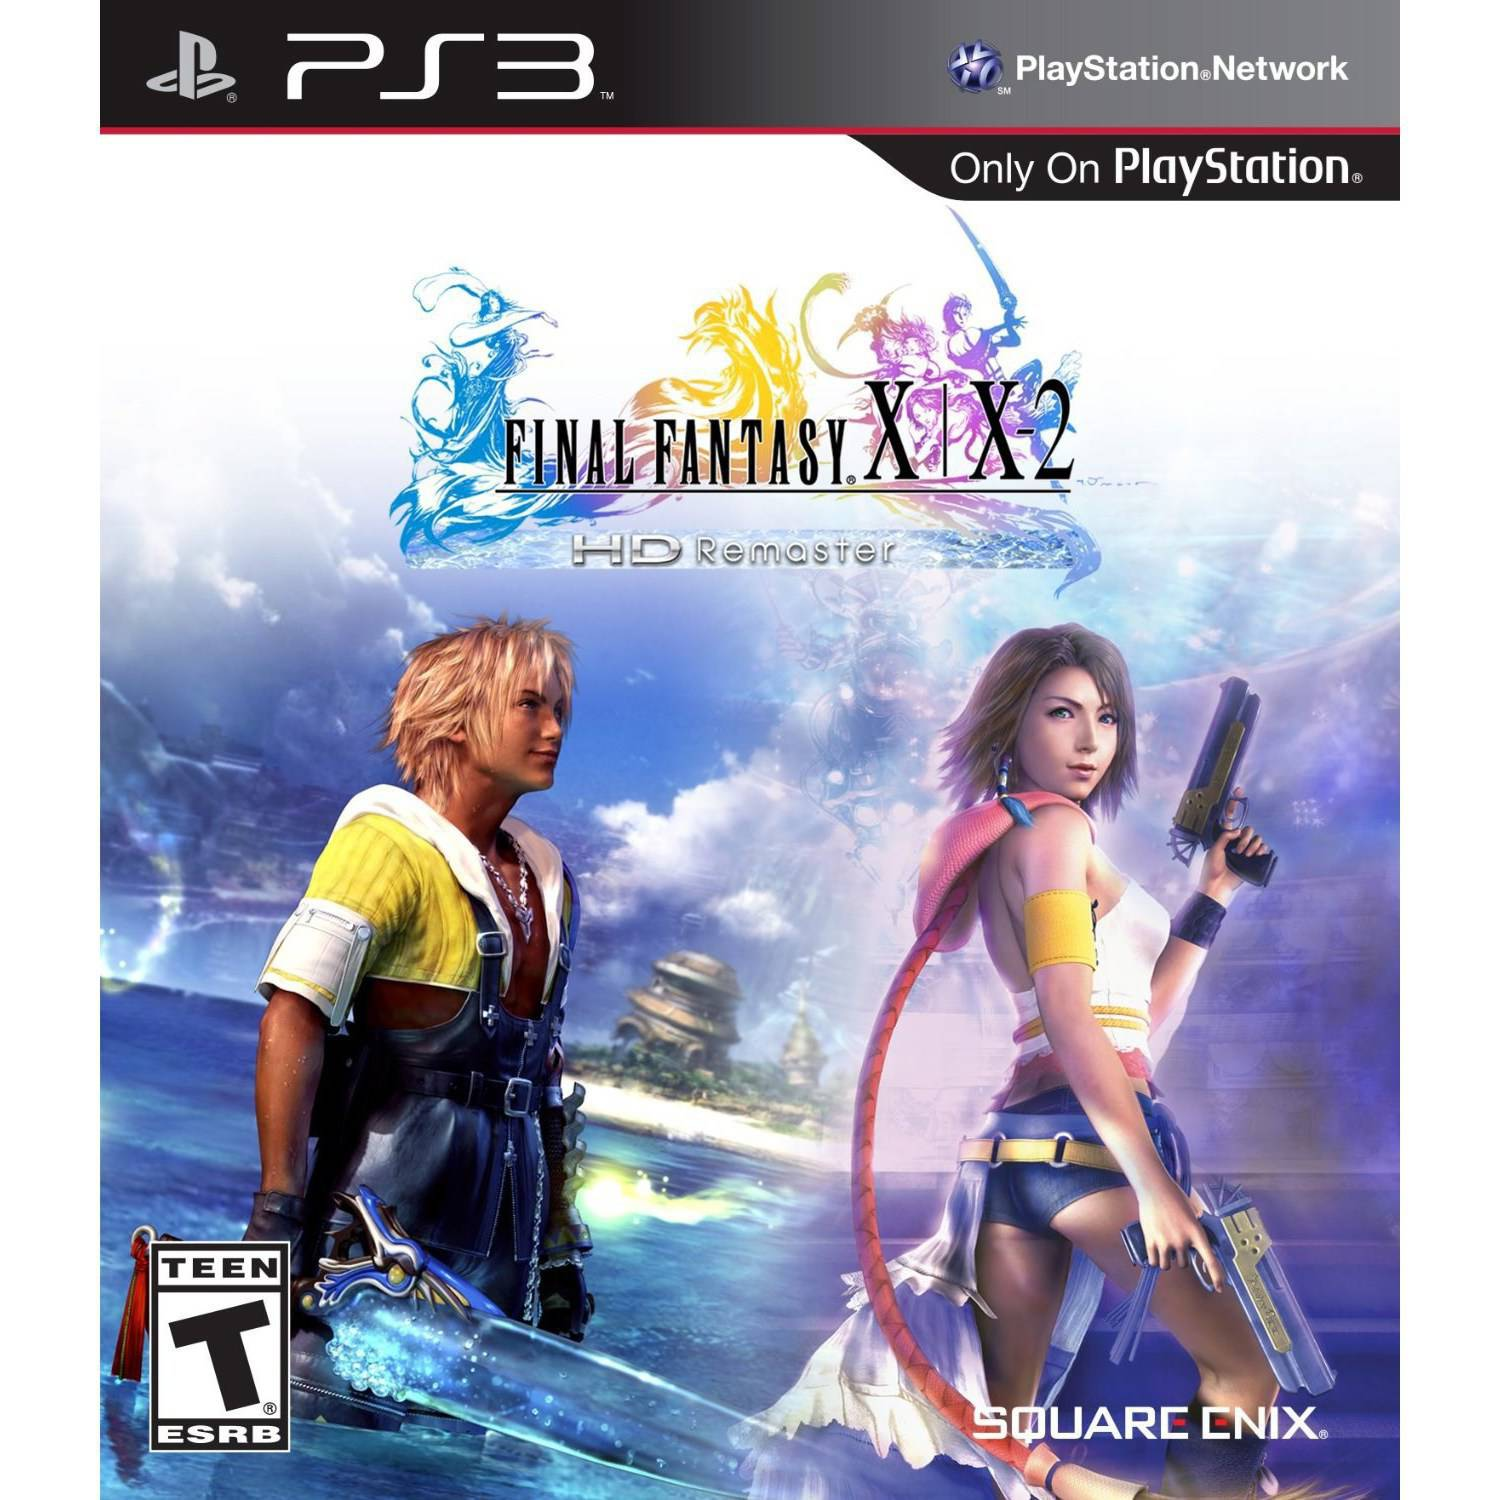 Final Fantasy X / X-2 HD Remaster (PS3)